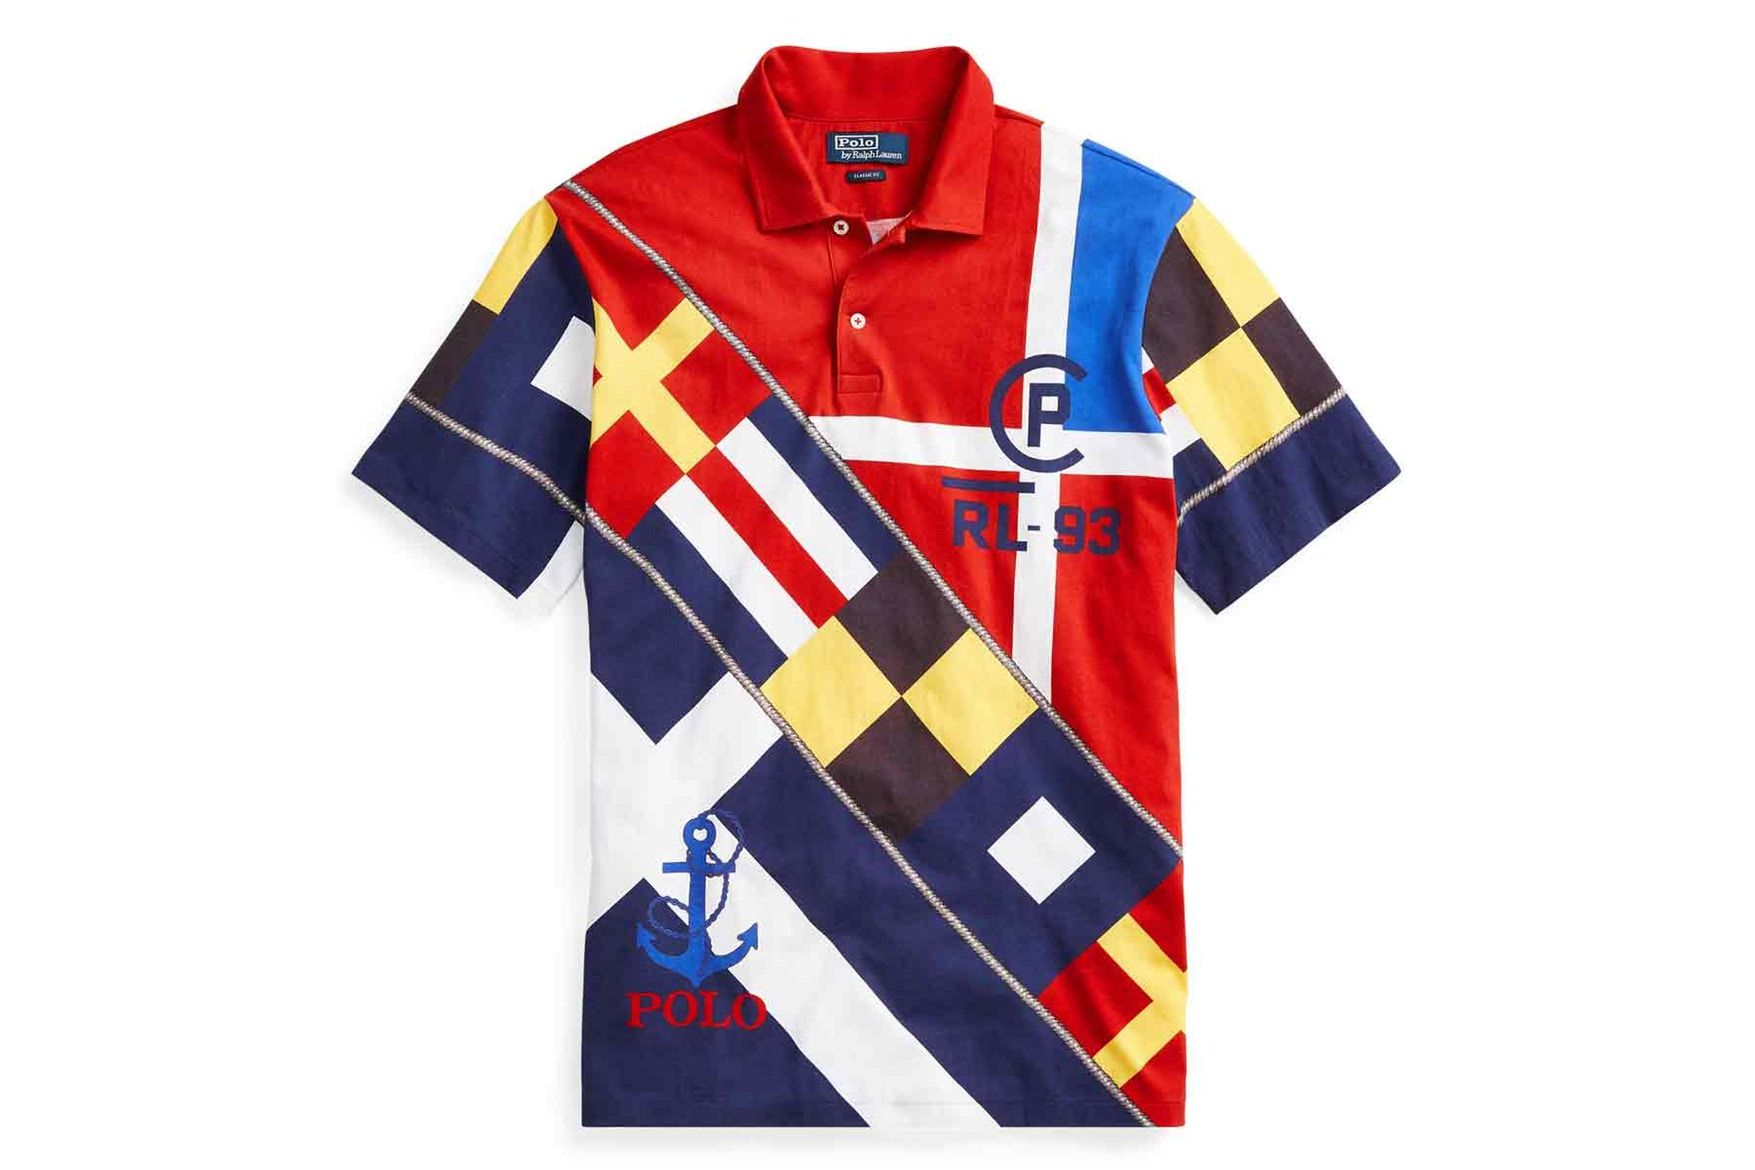 Polo by Ralph Lauren's Limited Edition CP 93 Collection Is Inspired